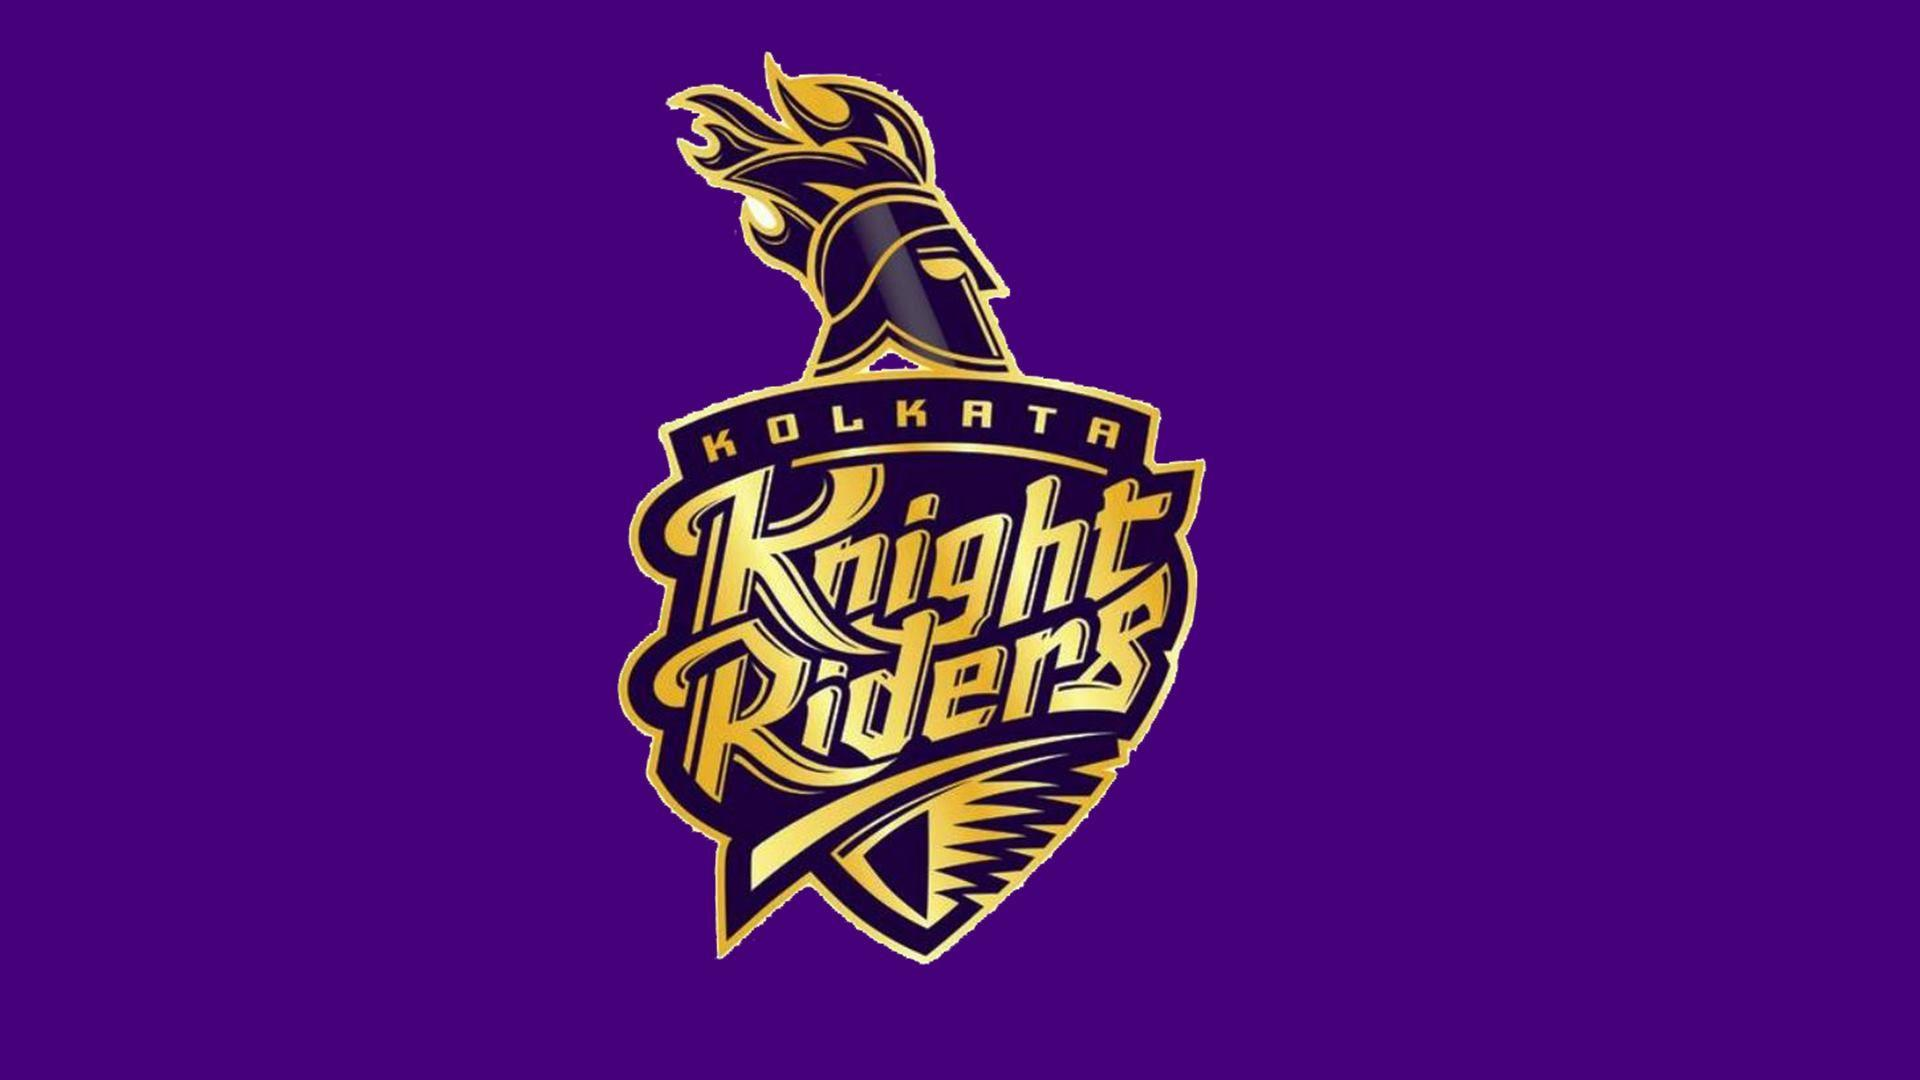 Kolkata Knight Riders Wallpapers Wallpaper Cave